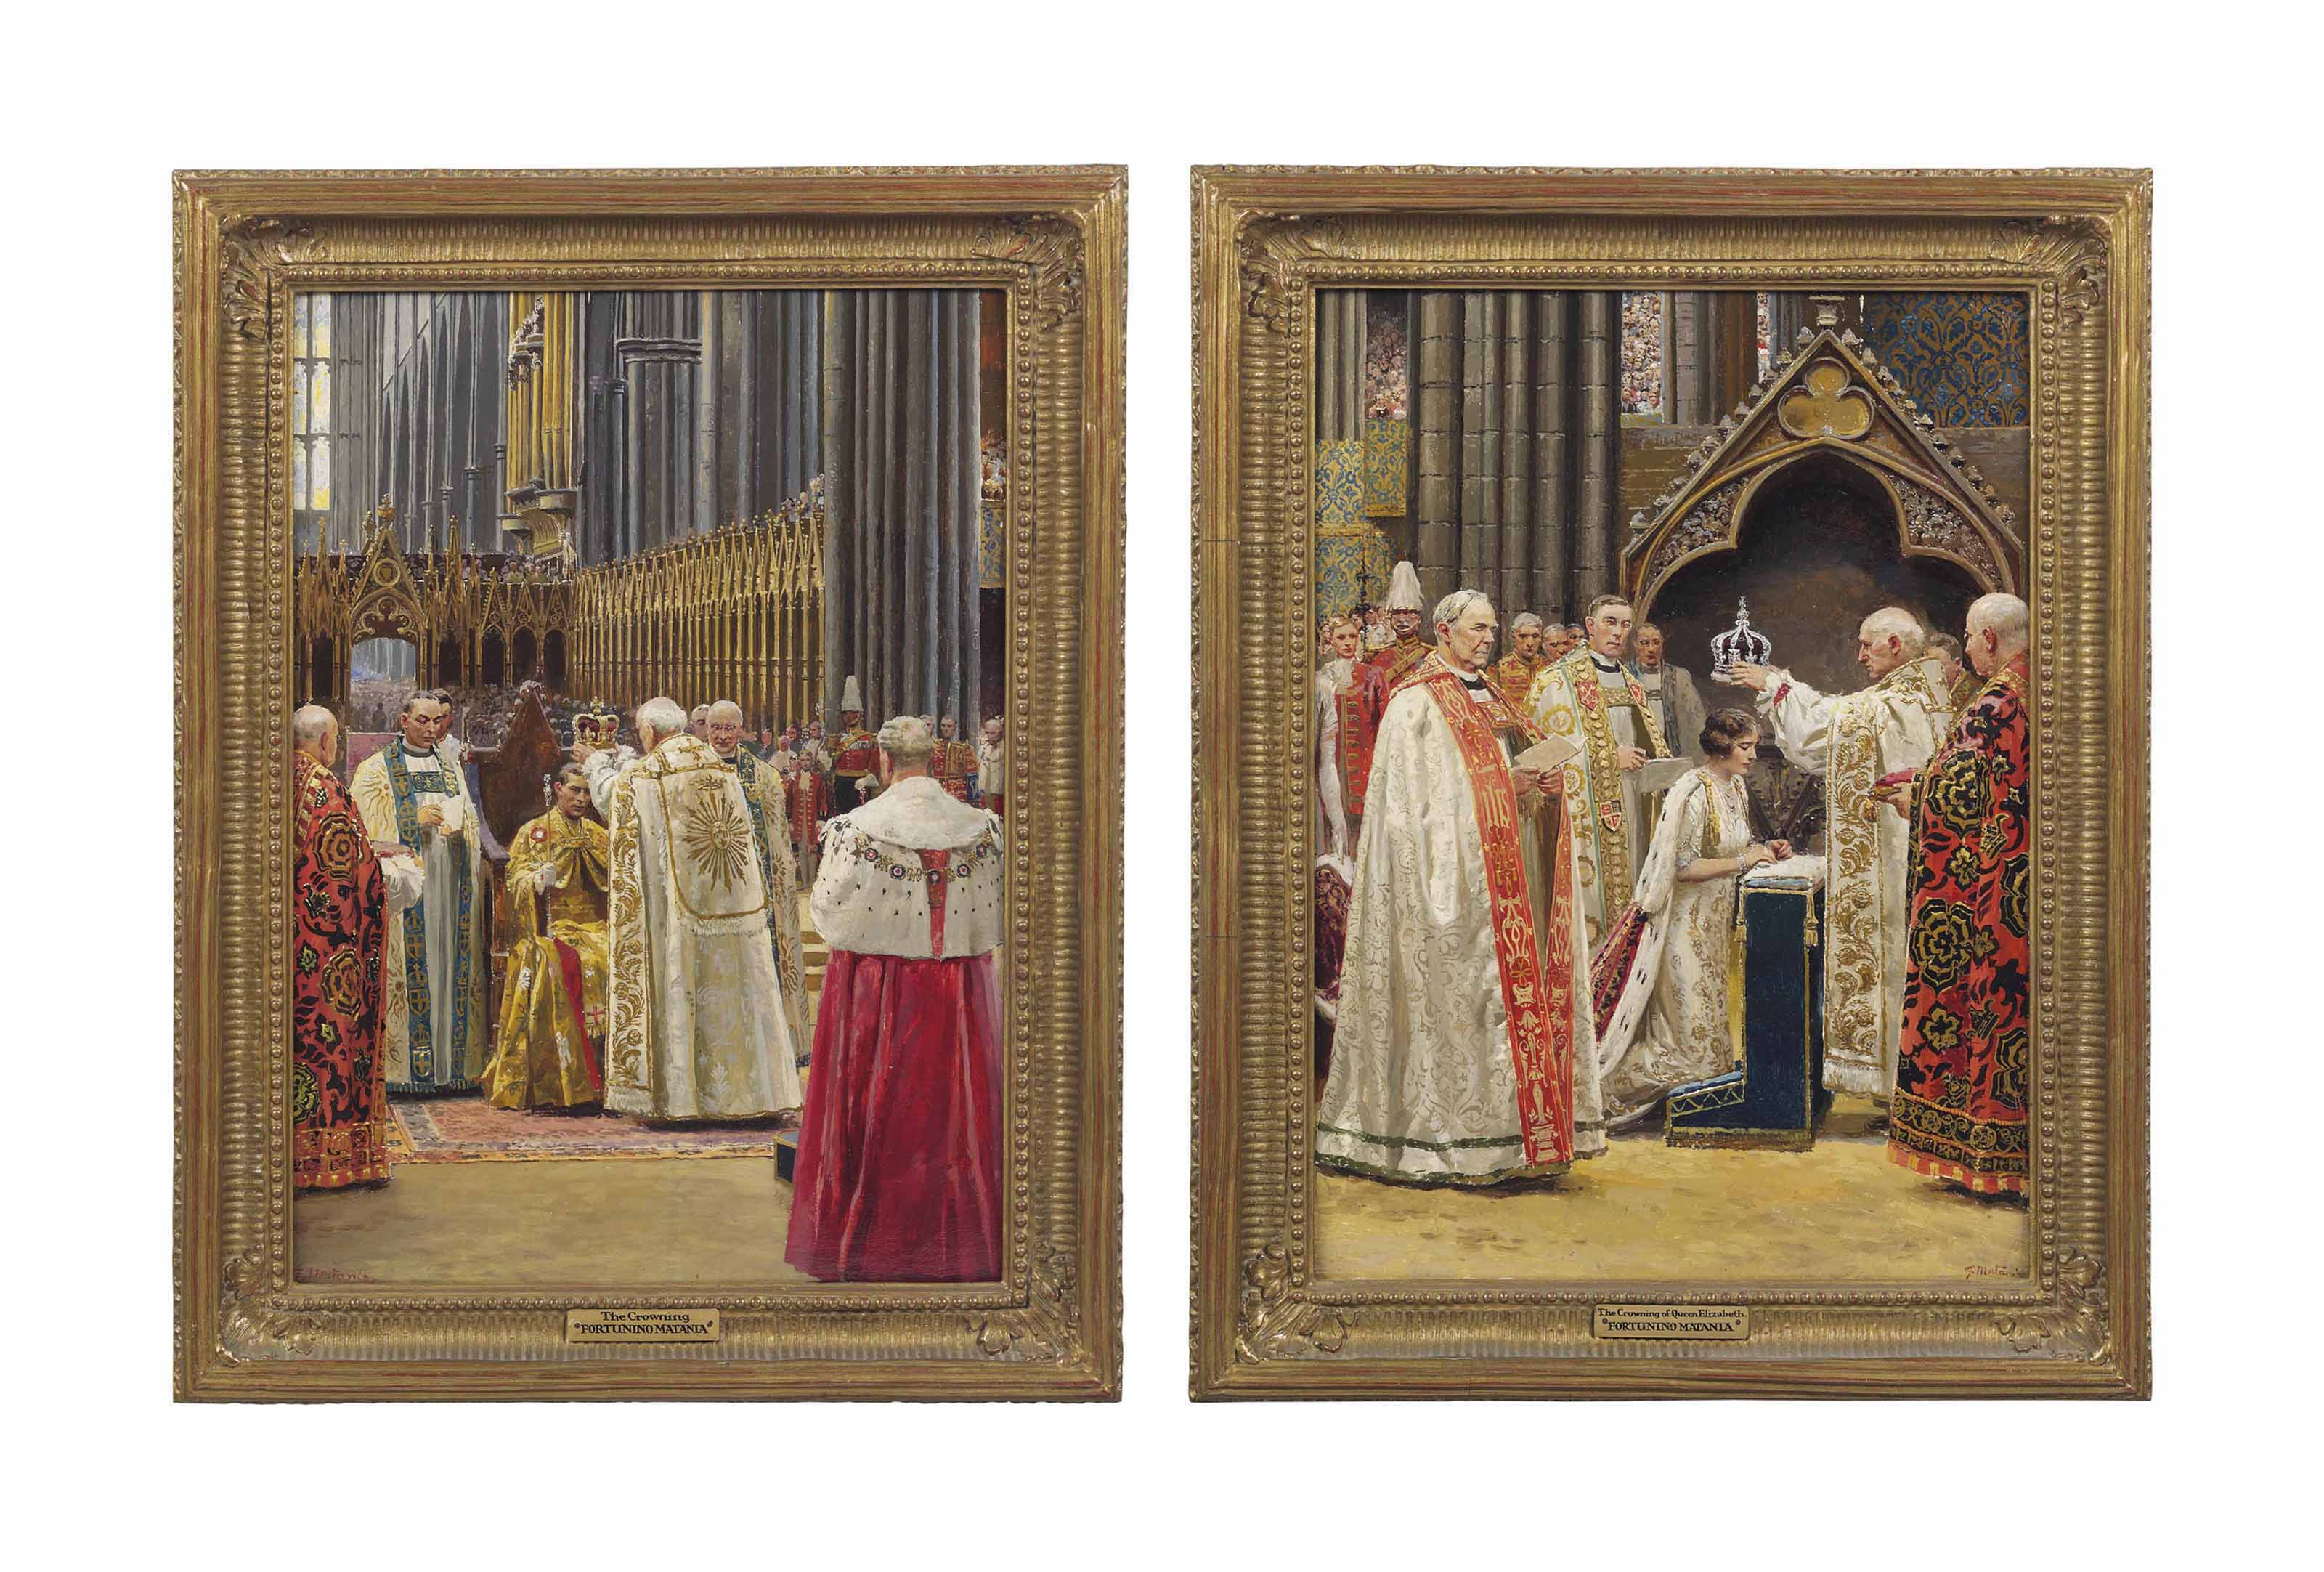 Scenes from the coronation of King George VI (1895-1952): The Anointing; The Recognition; The Crowning; and The Crowning of Queen Elizabeth